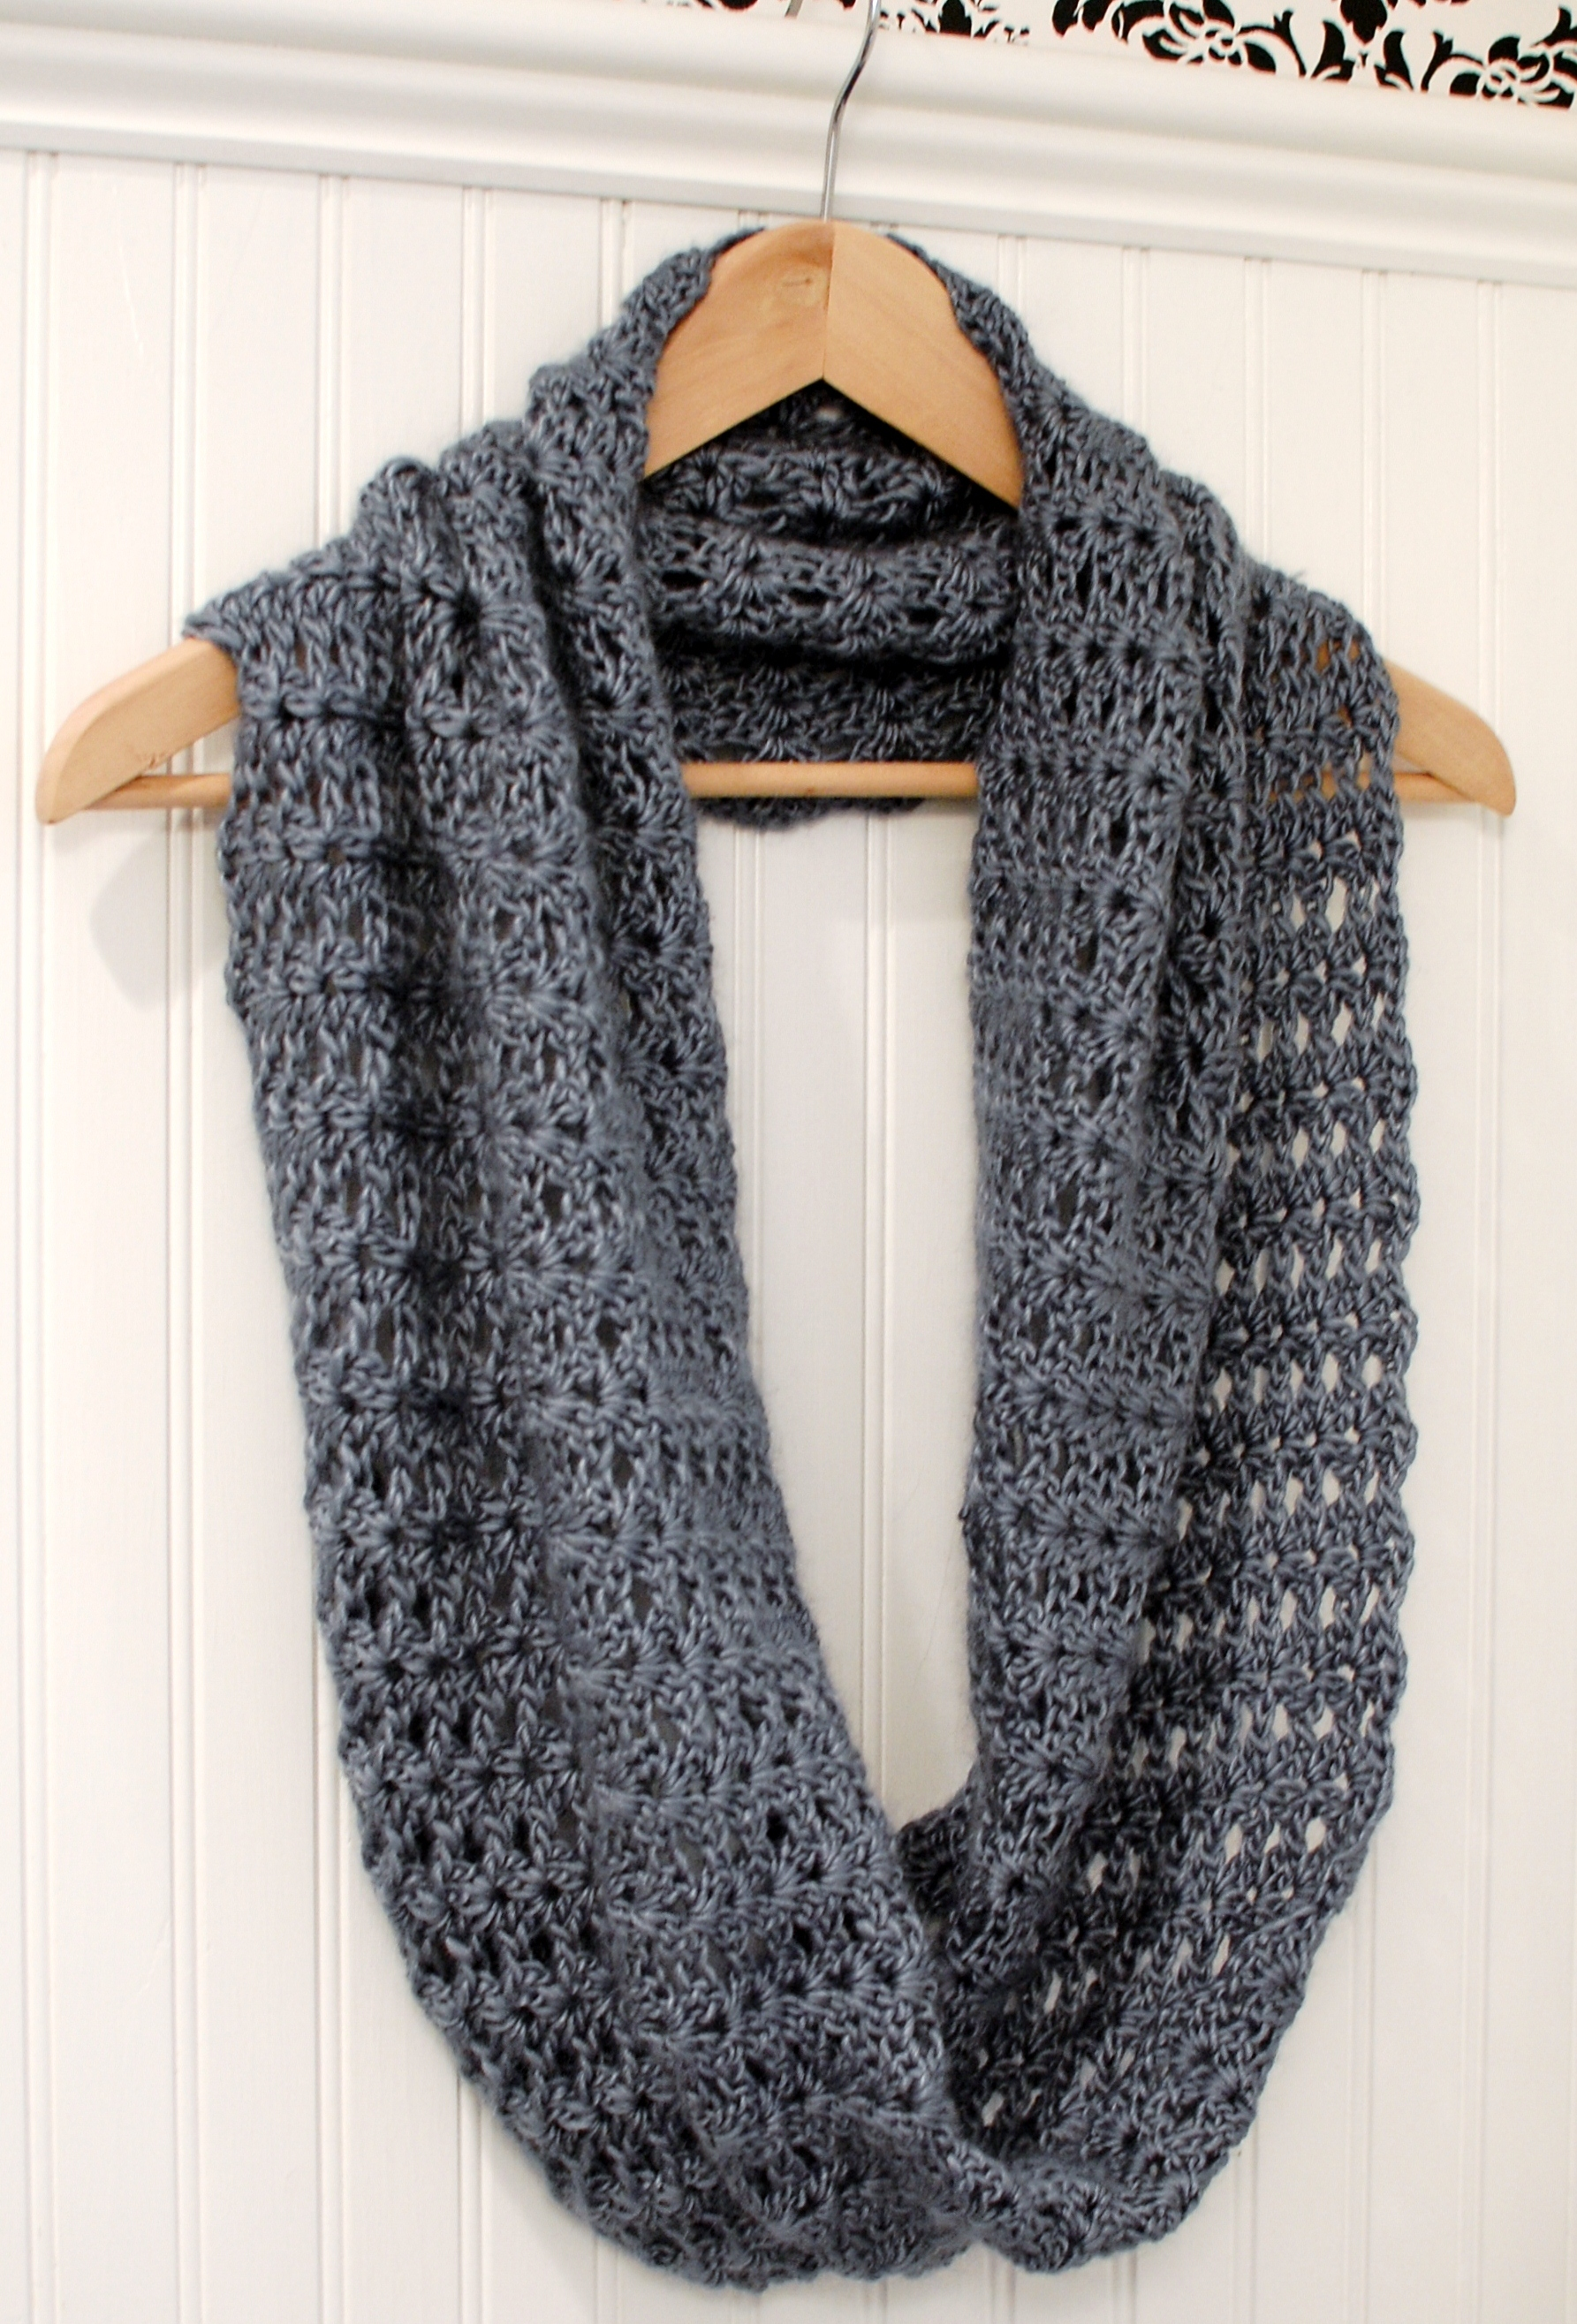 Crochet Stitches Good For Scarves : Crochet Pattern - Mobius Infinity Scarf / Wrap (includes instructions ...